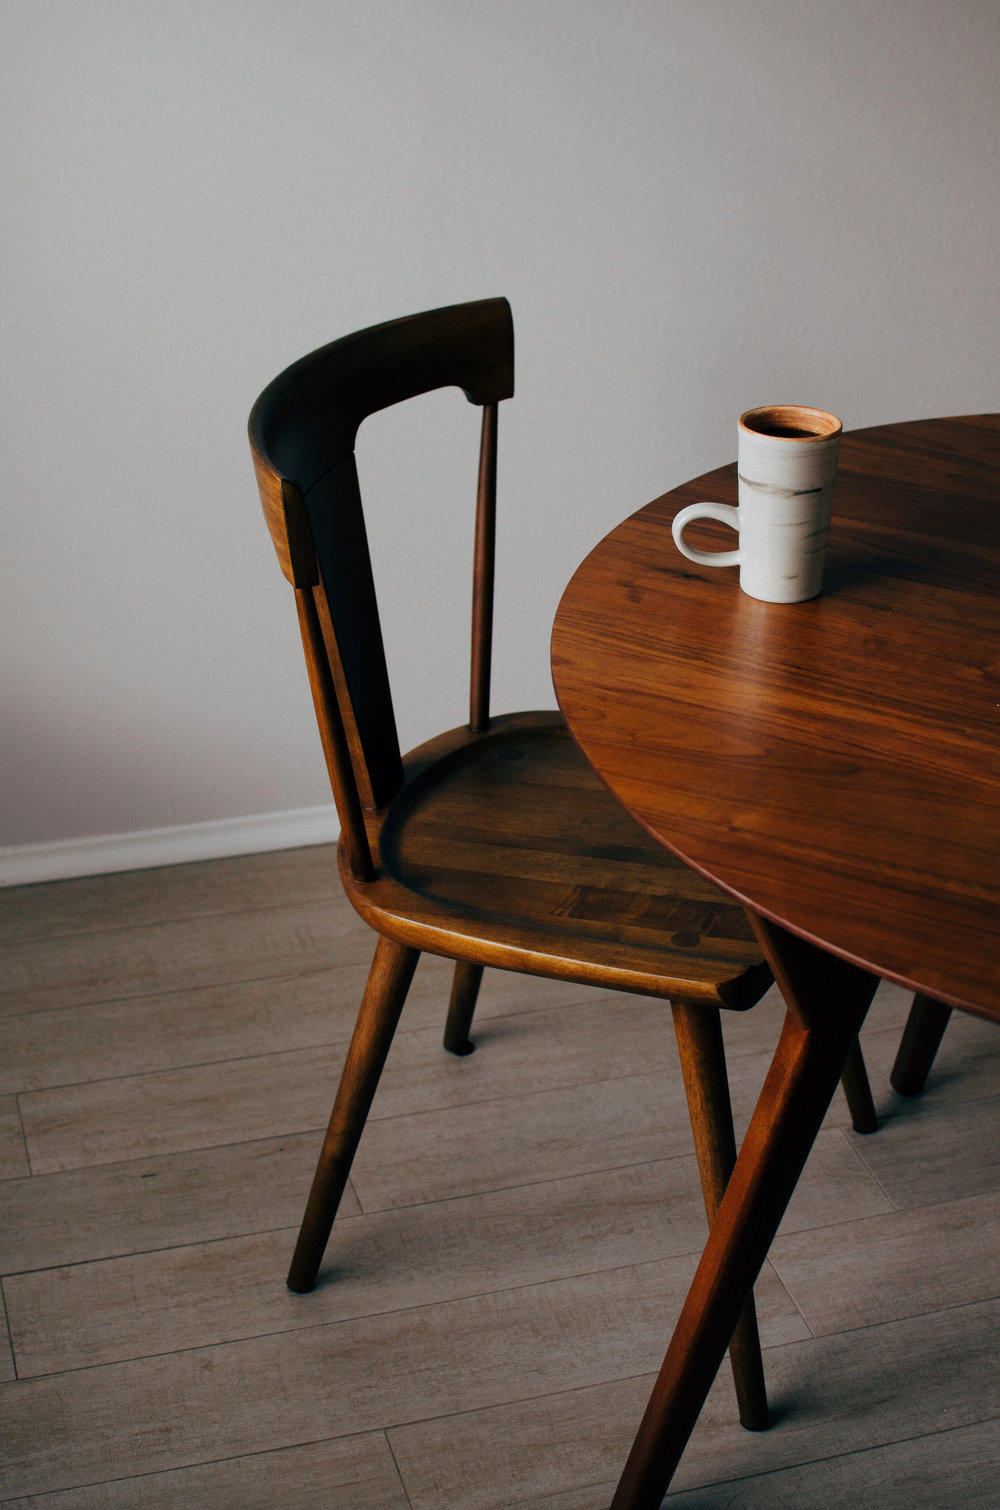 Laminate - laminate is great: lower cost with most of the great benefits of hardwood,